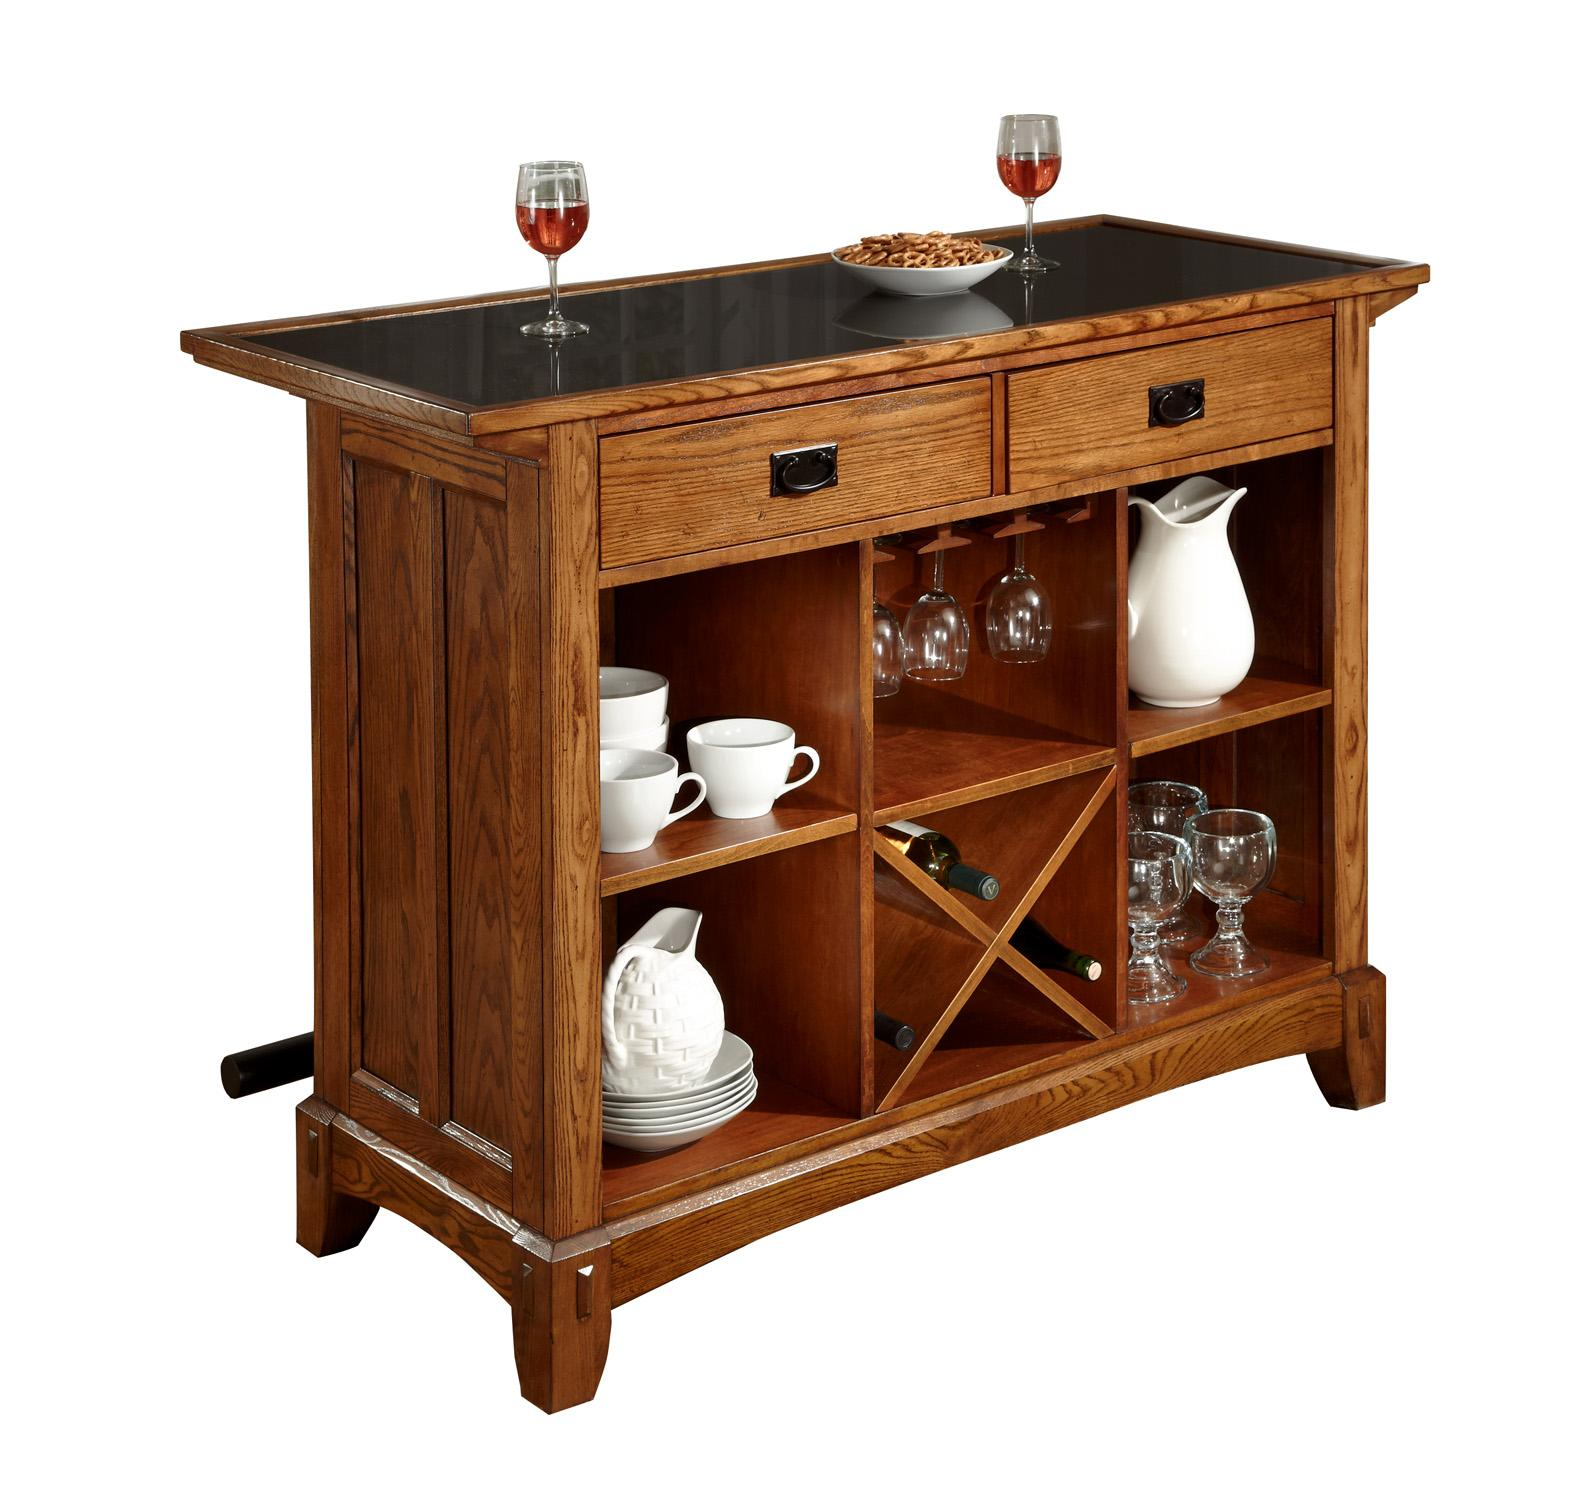 Home Styles Arts And Crafts Mission Style Bar With Storage And Granite Top    AHFA   Bar Dealer Locator